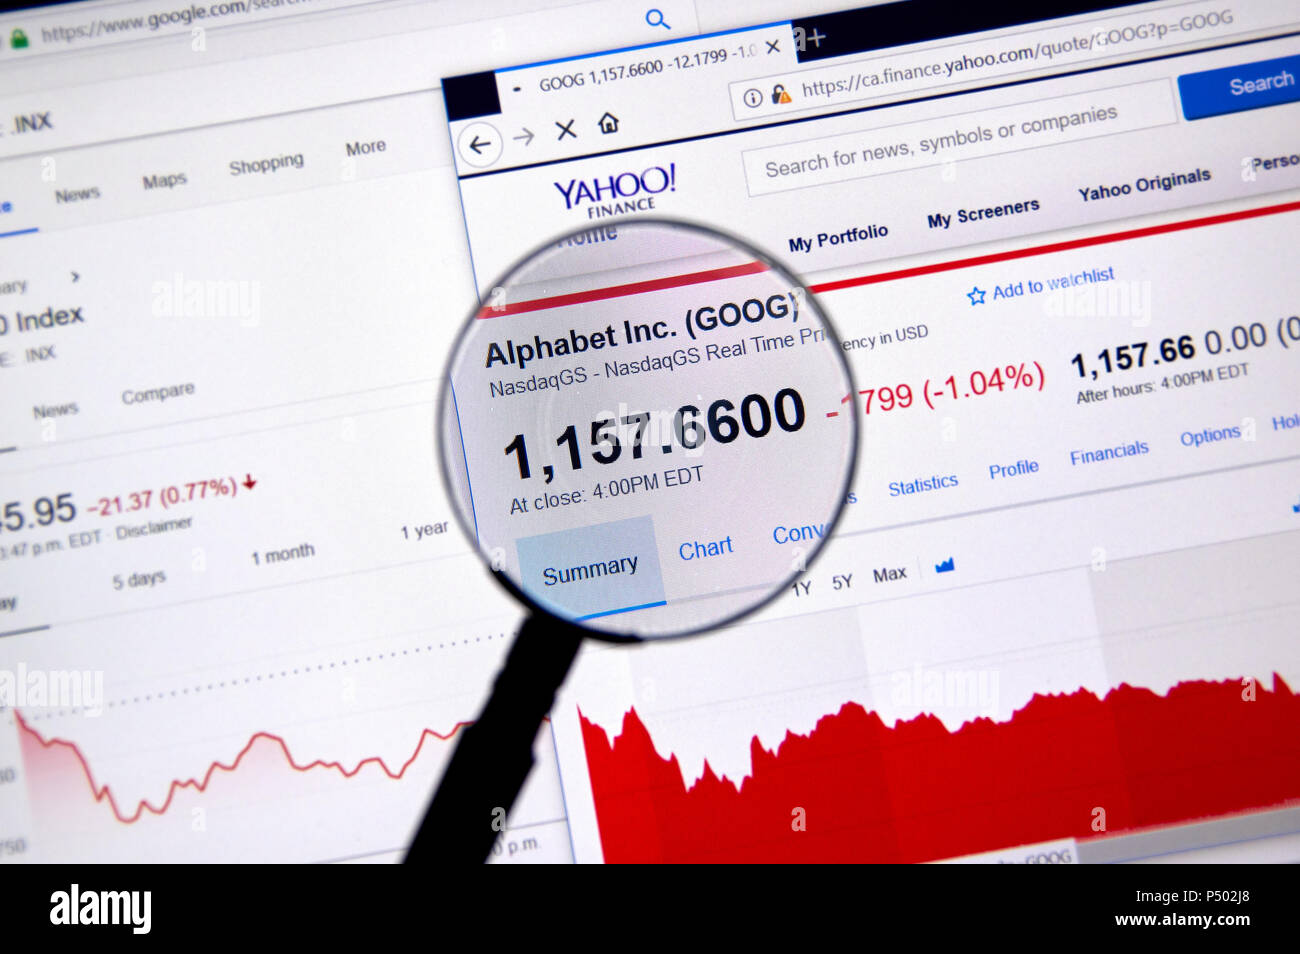 MONTREAL, CANADA - JUNE 22, 2018: Alphabet Inc GOOG ticker with shares price and charts under magnifying glass on Yahoo Finance. - Stock Image